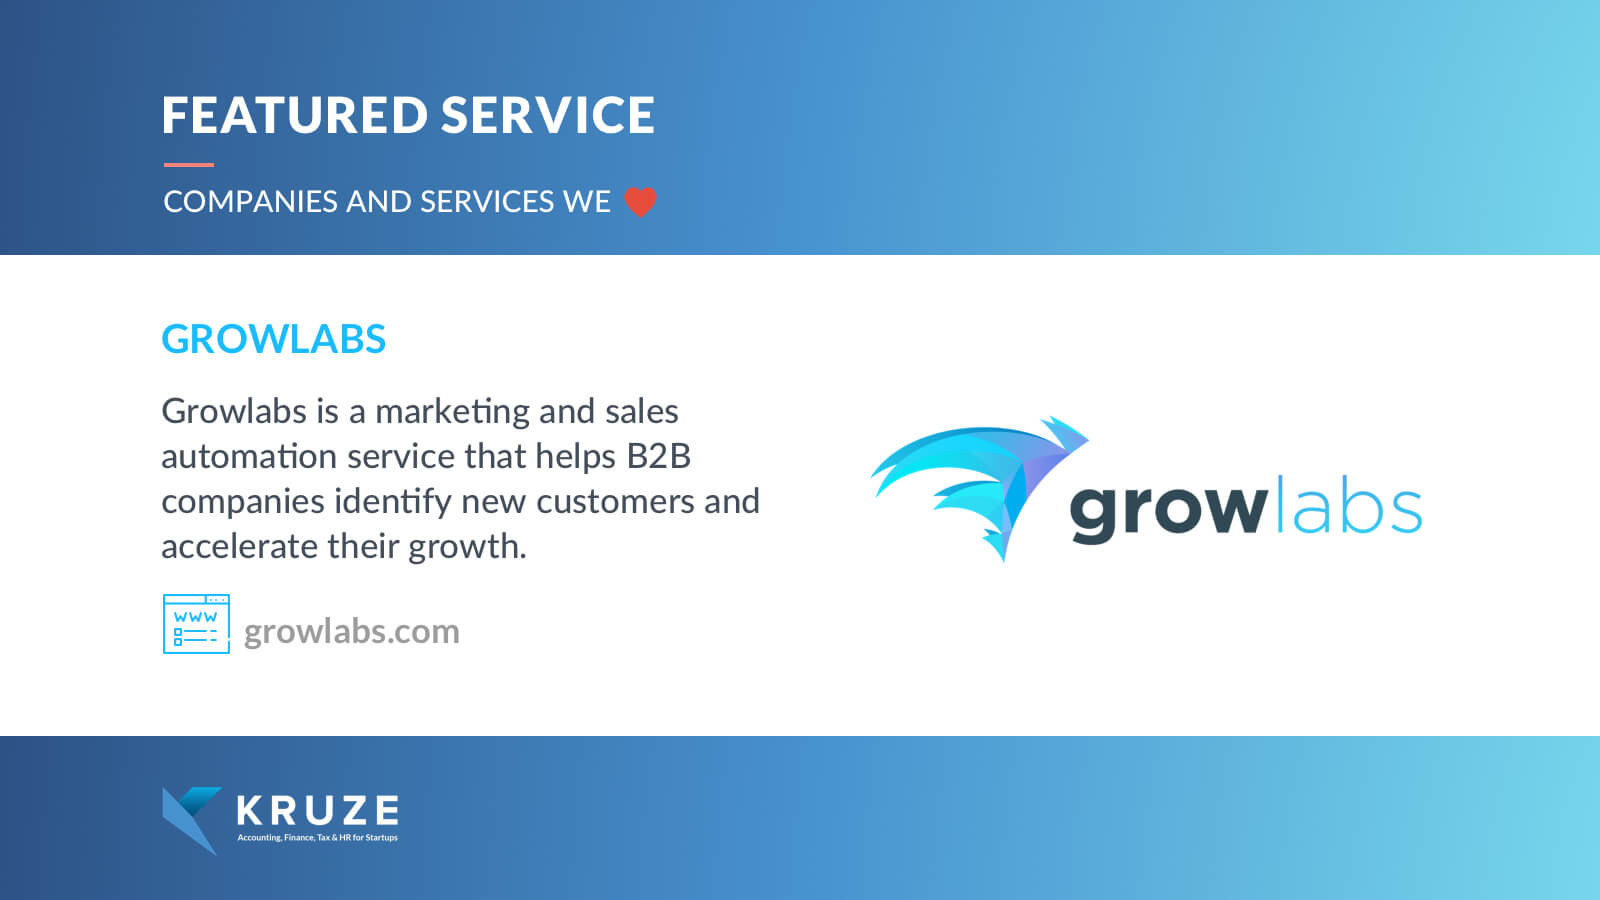 Featured Service - Growlabs